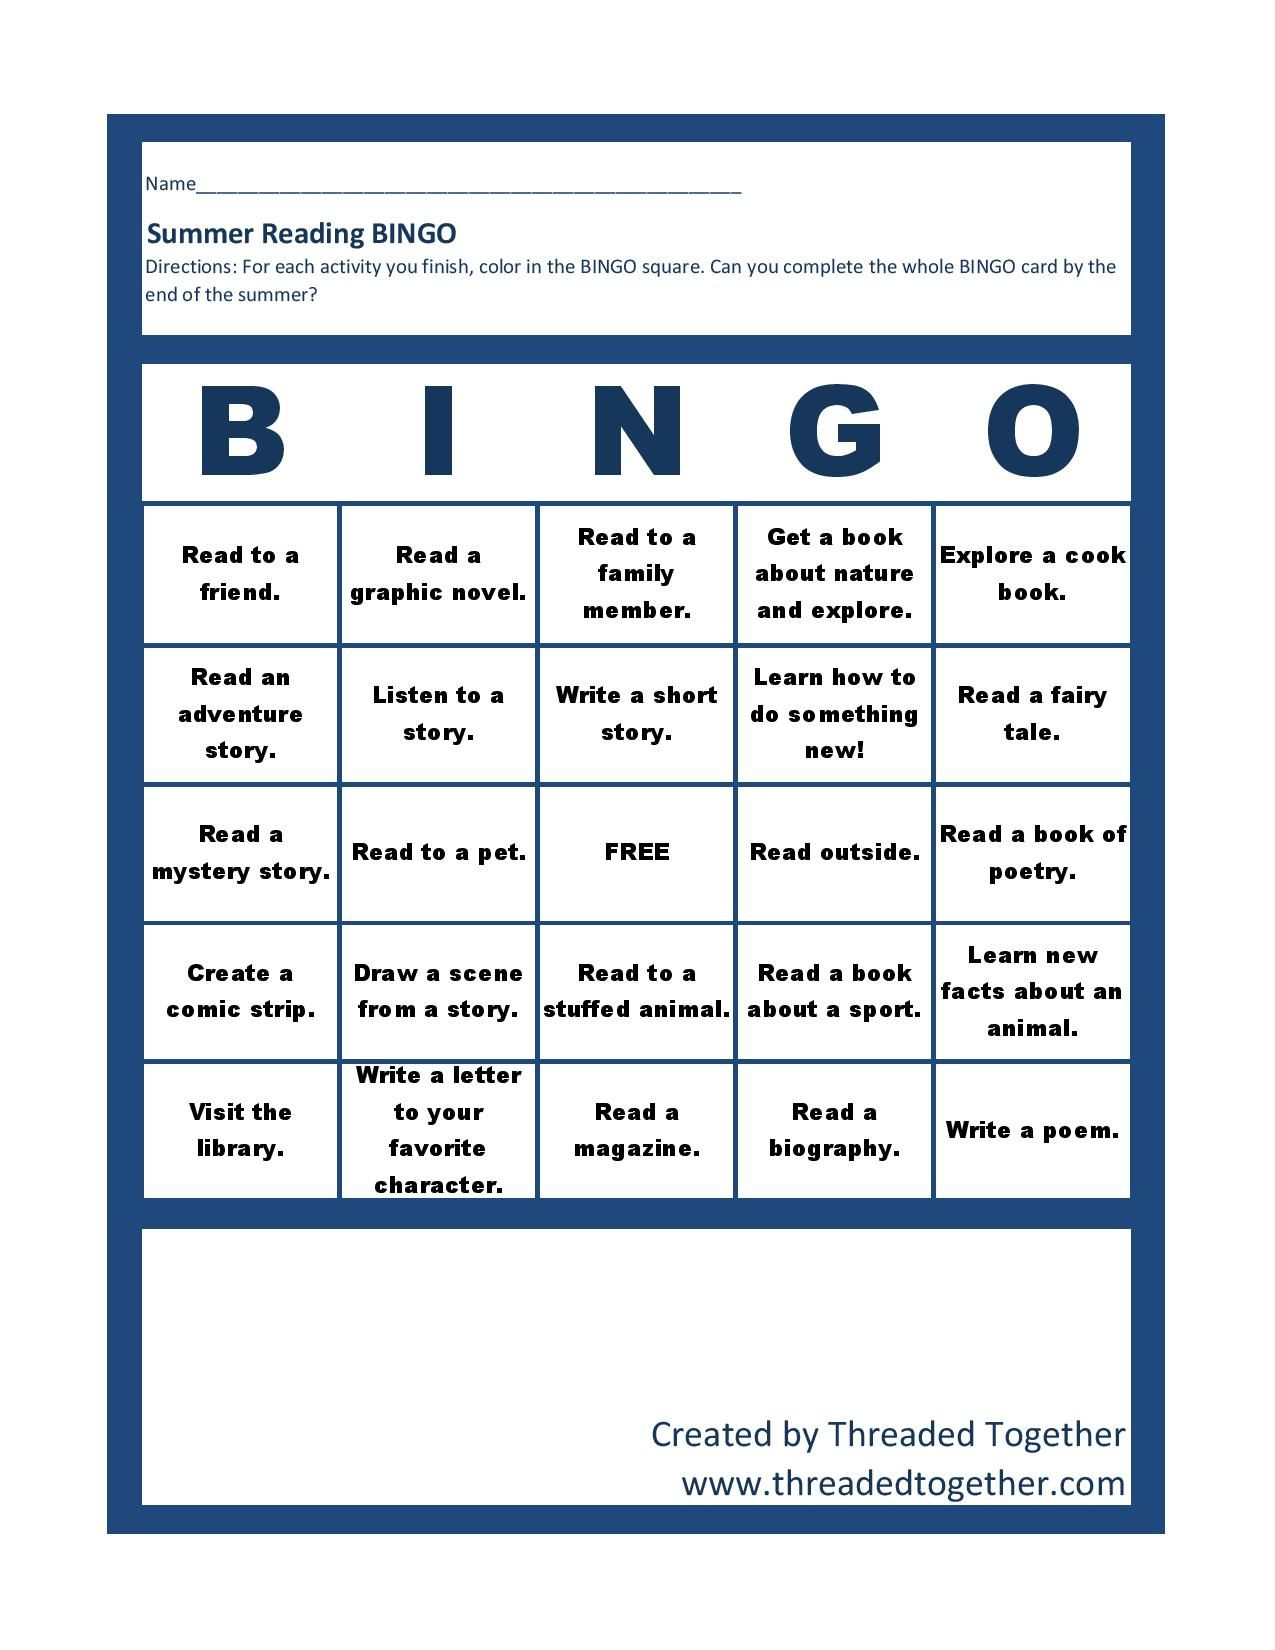 Summer Reading At The Library A Printable Game Board And